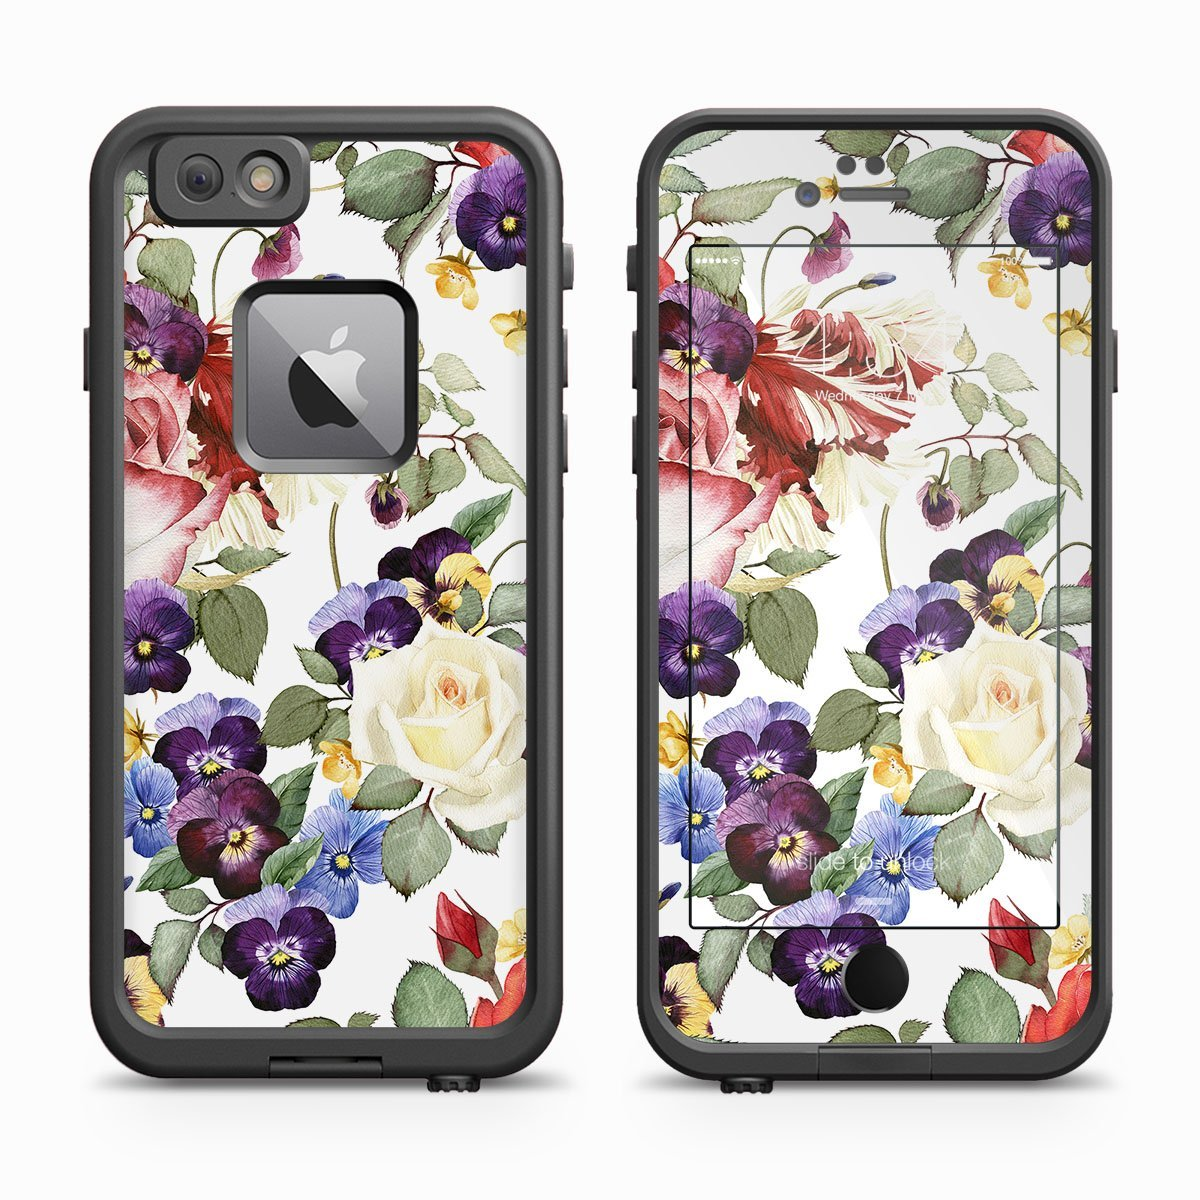 Speck case coupon code 2018